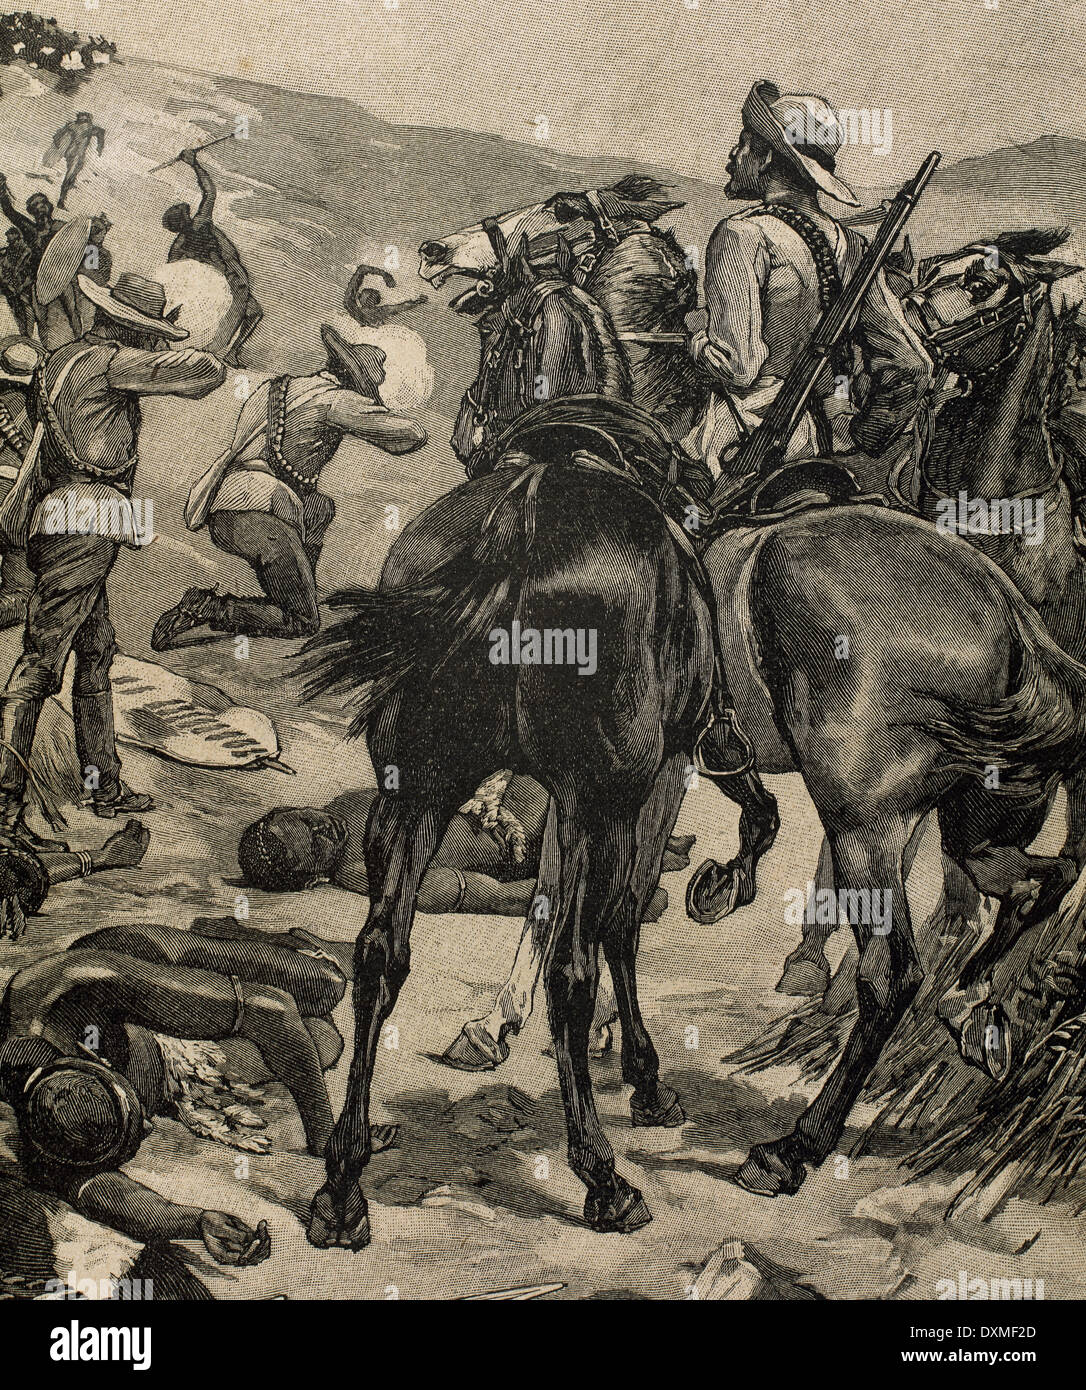 Anglo-Zulu War. Fought in 1879 between the British Empire and the Zulu Kingdom. Engraving by Marguerite. - Stock Image